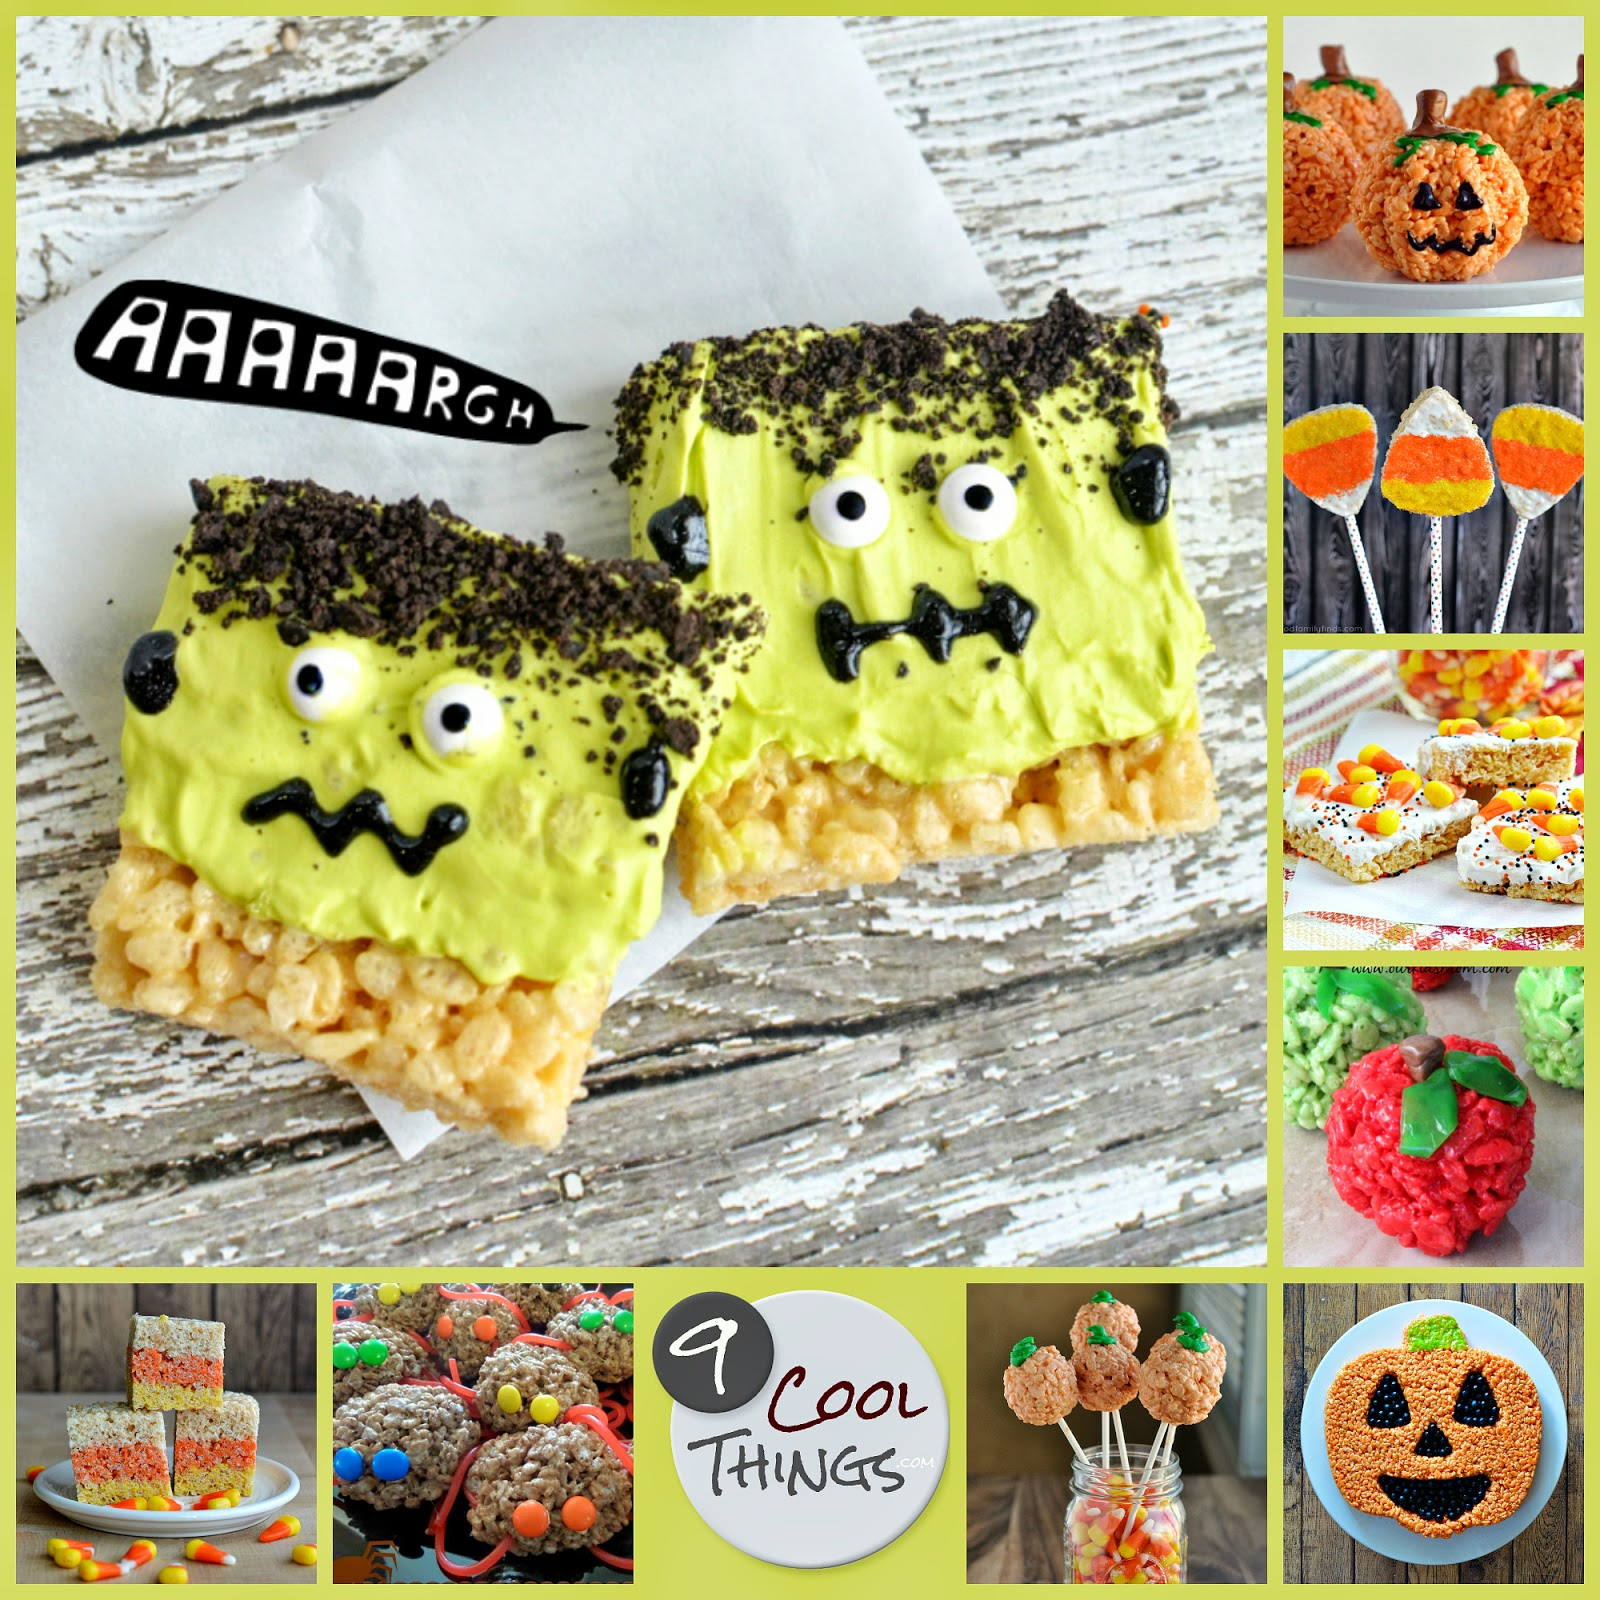 9 Halloween Rice Krispies Treats Recipes |  9CoolThings.com